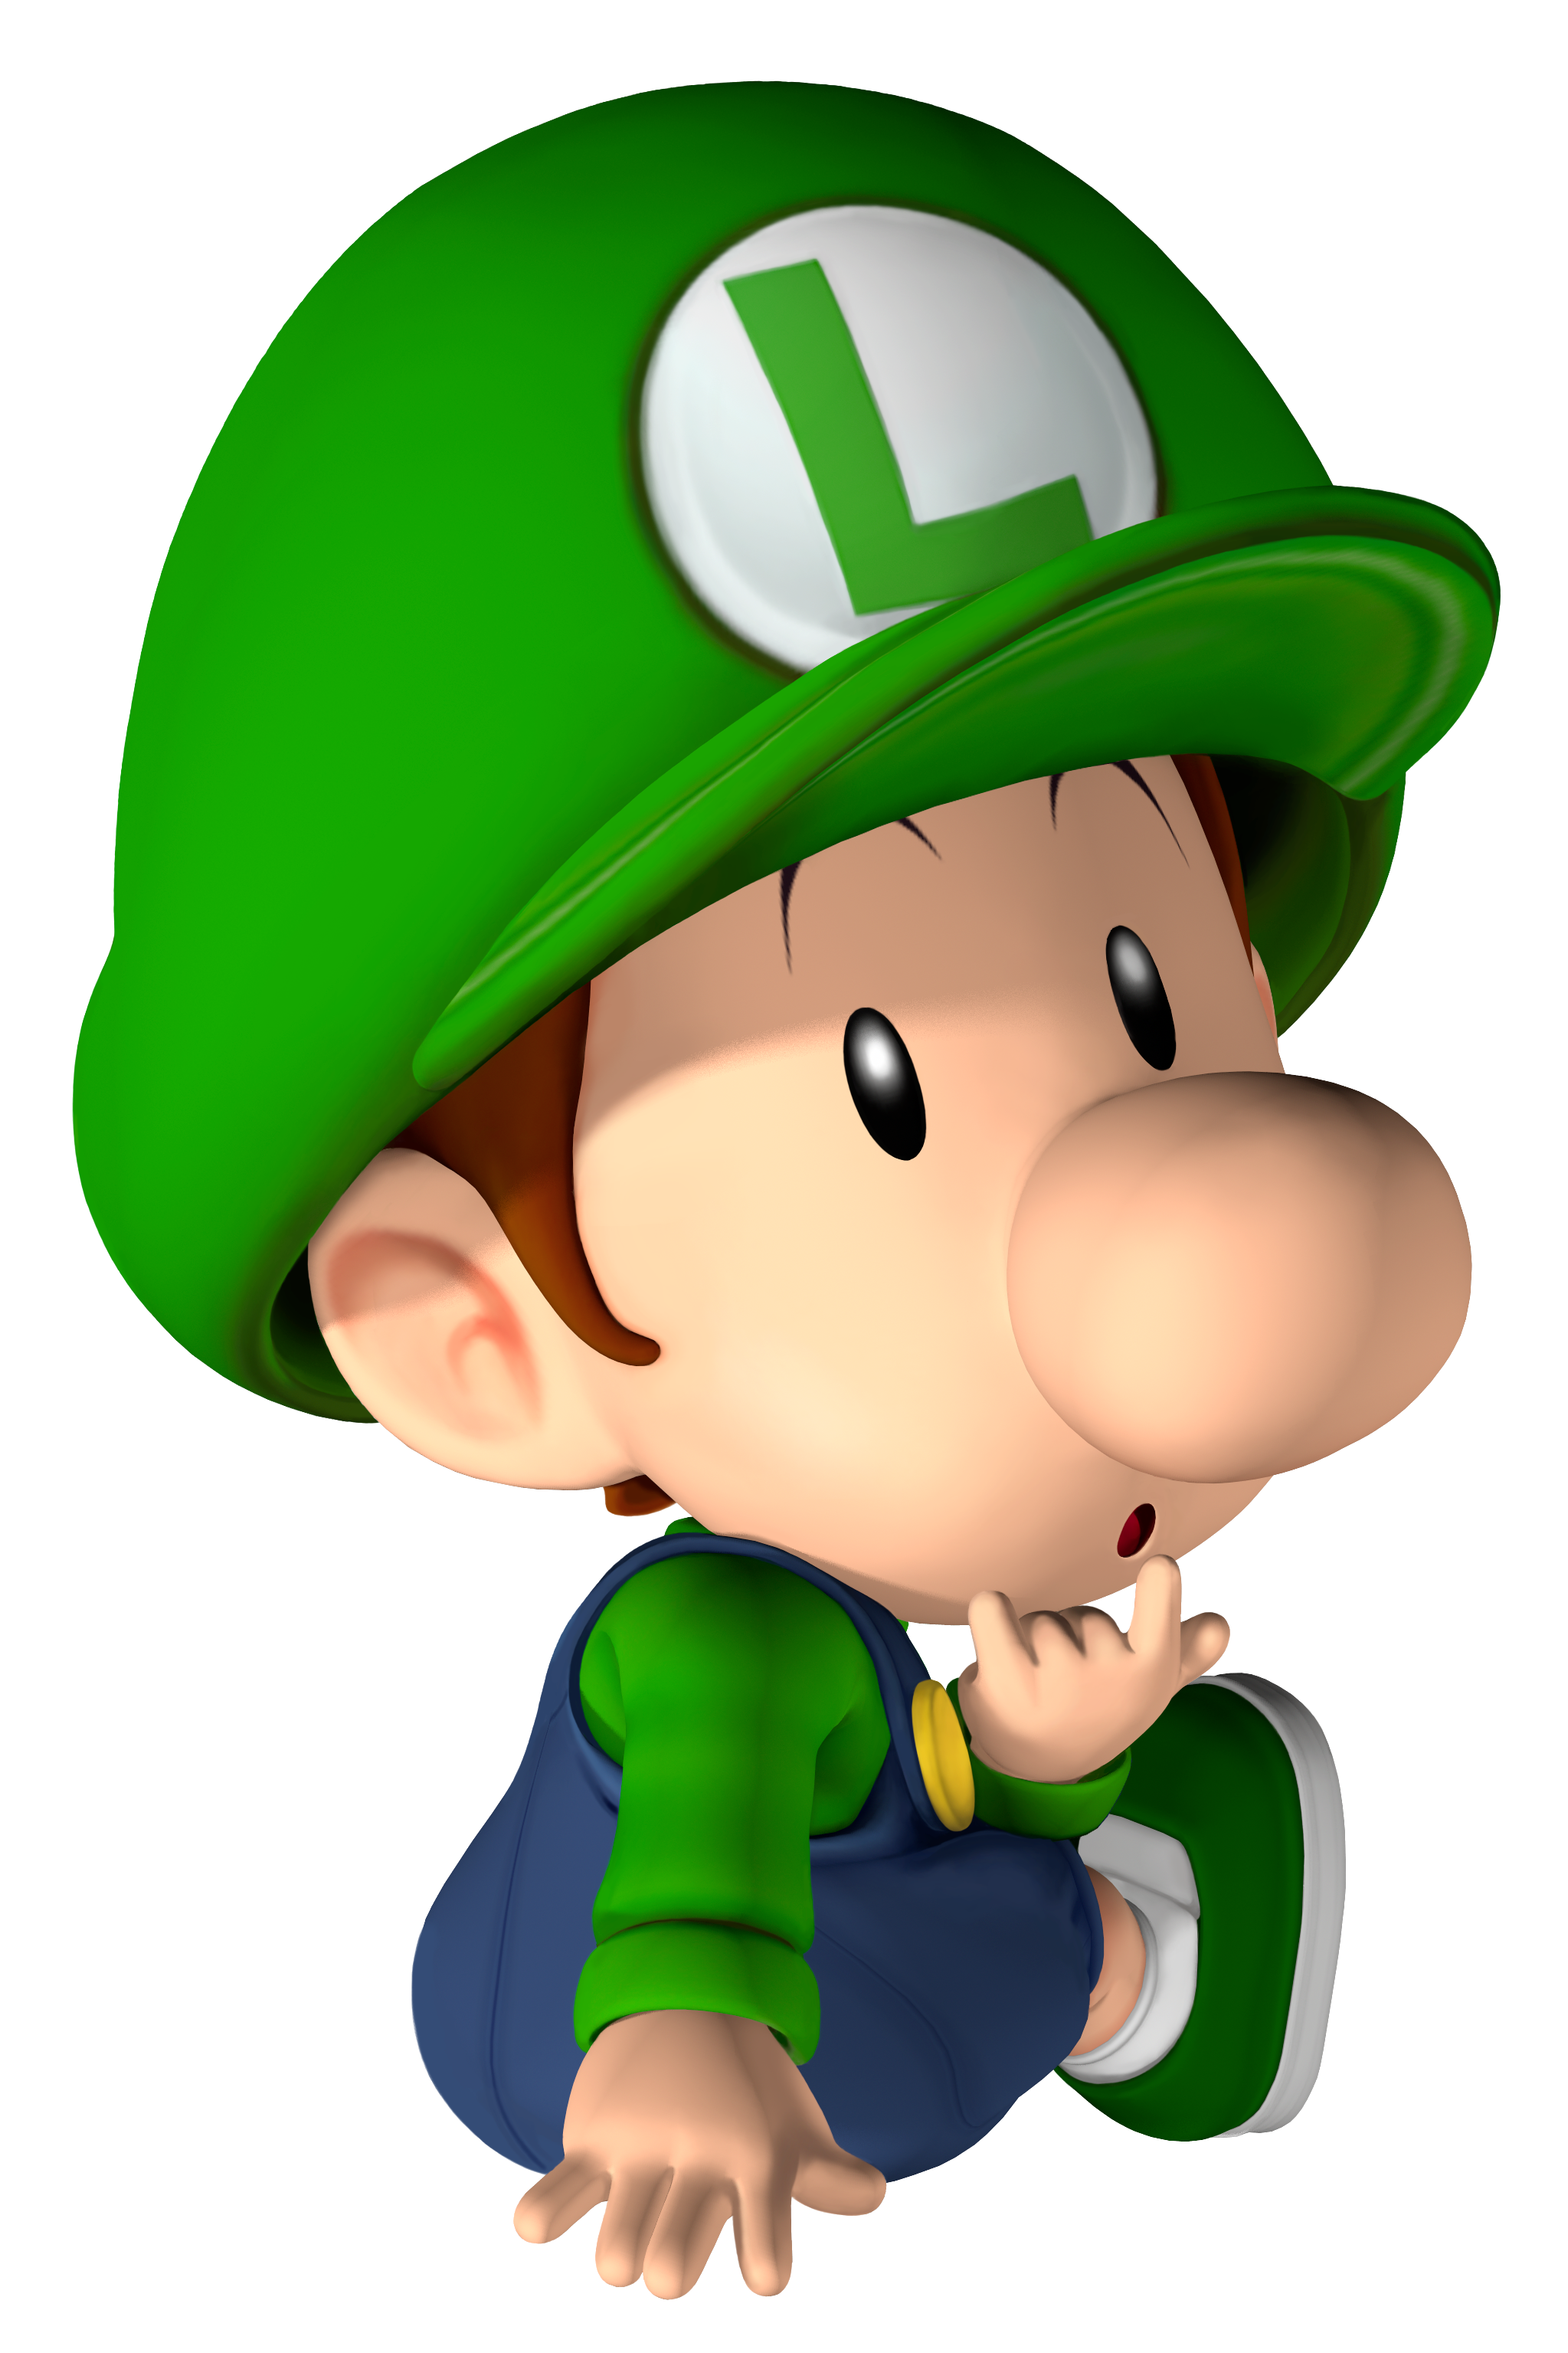 beb luigi mario fanon wiki fandom powered by wikia